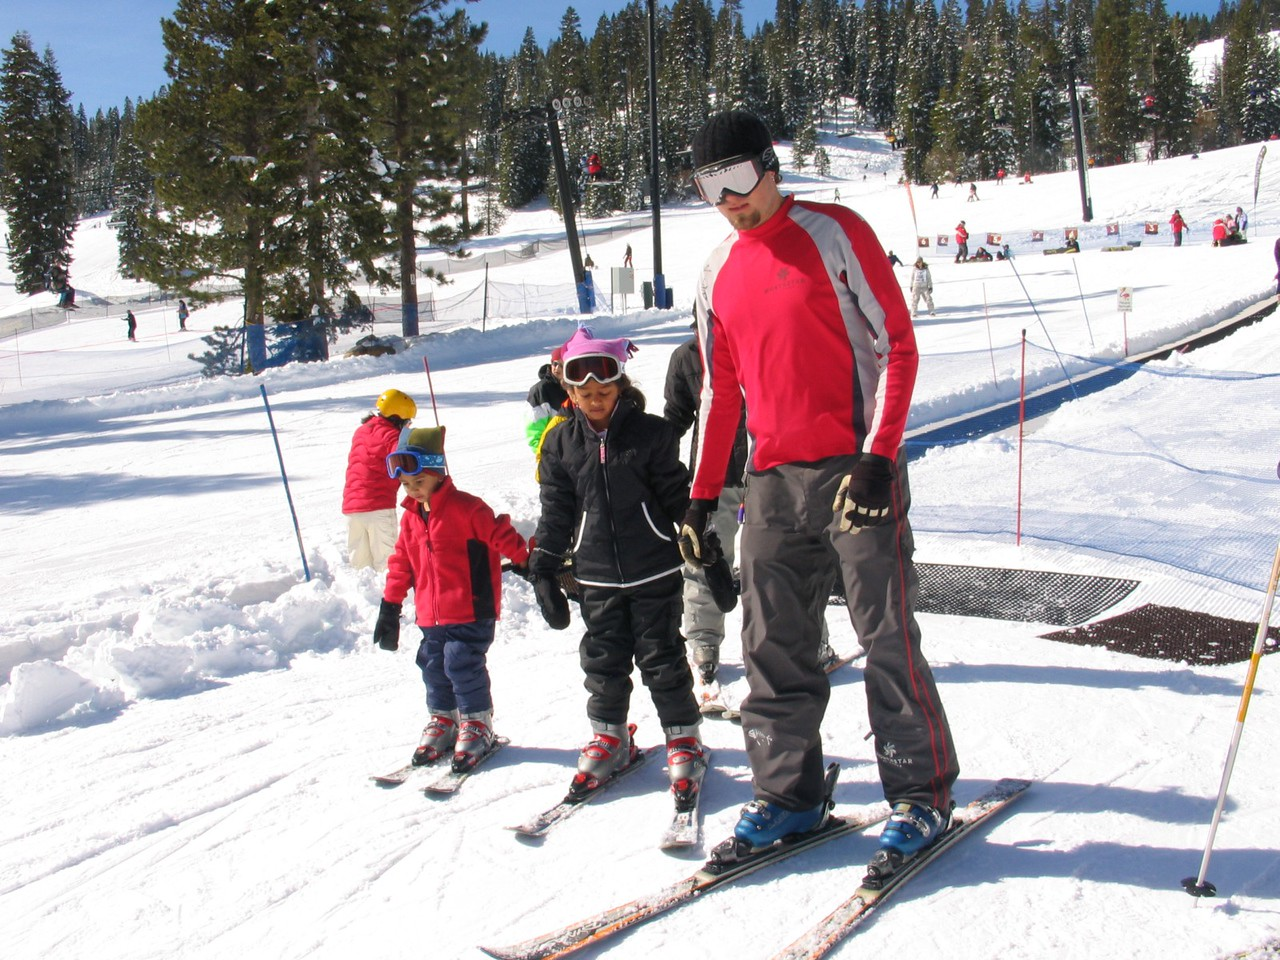 Resya and Rithik getting ready for their first time going down a slope on skis!